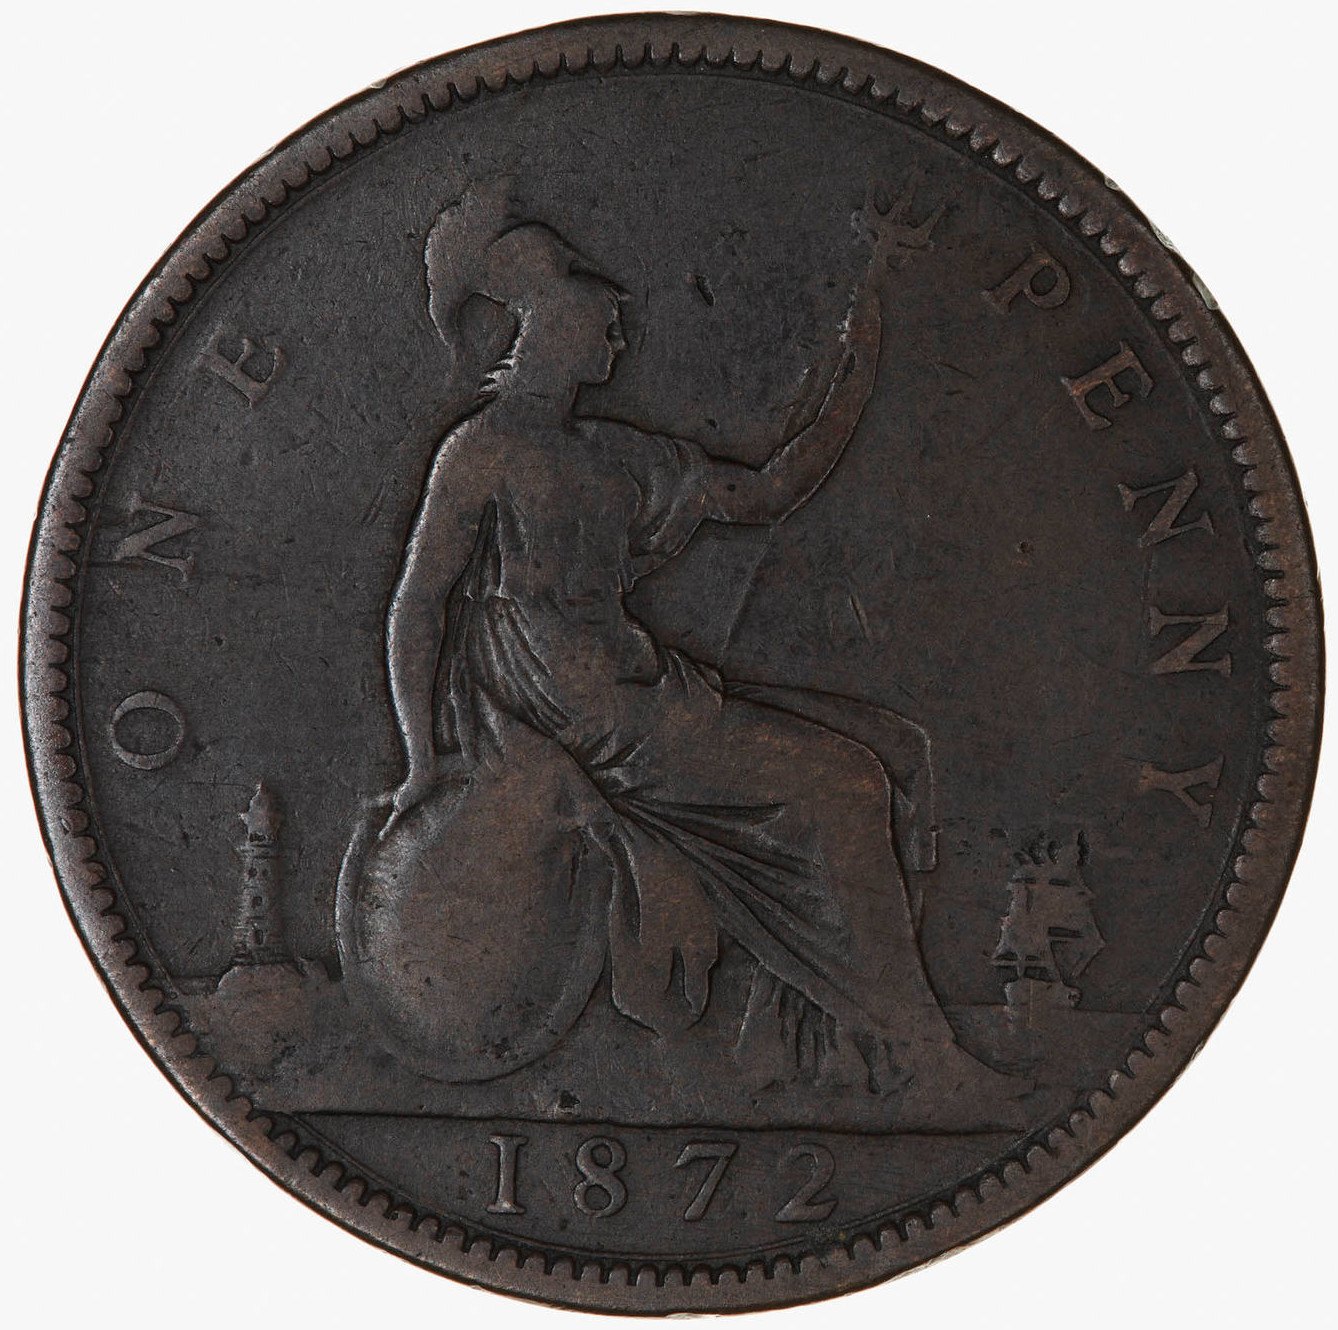 Penny 1872: Photo Coin - Penny, Queen Victoria, Great Britain, 1872